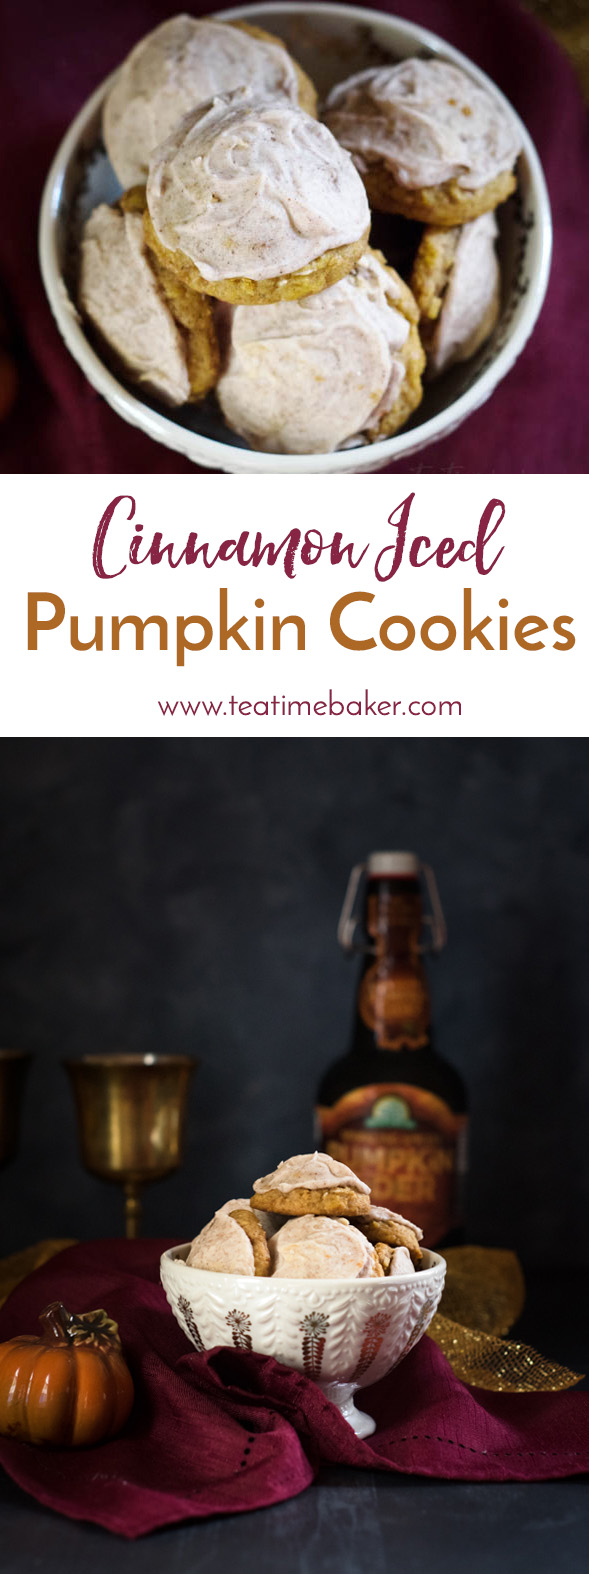 Cinnamon Iced Pumpkin Cookies